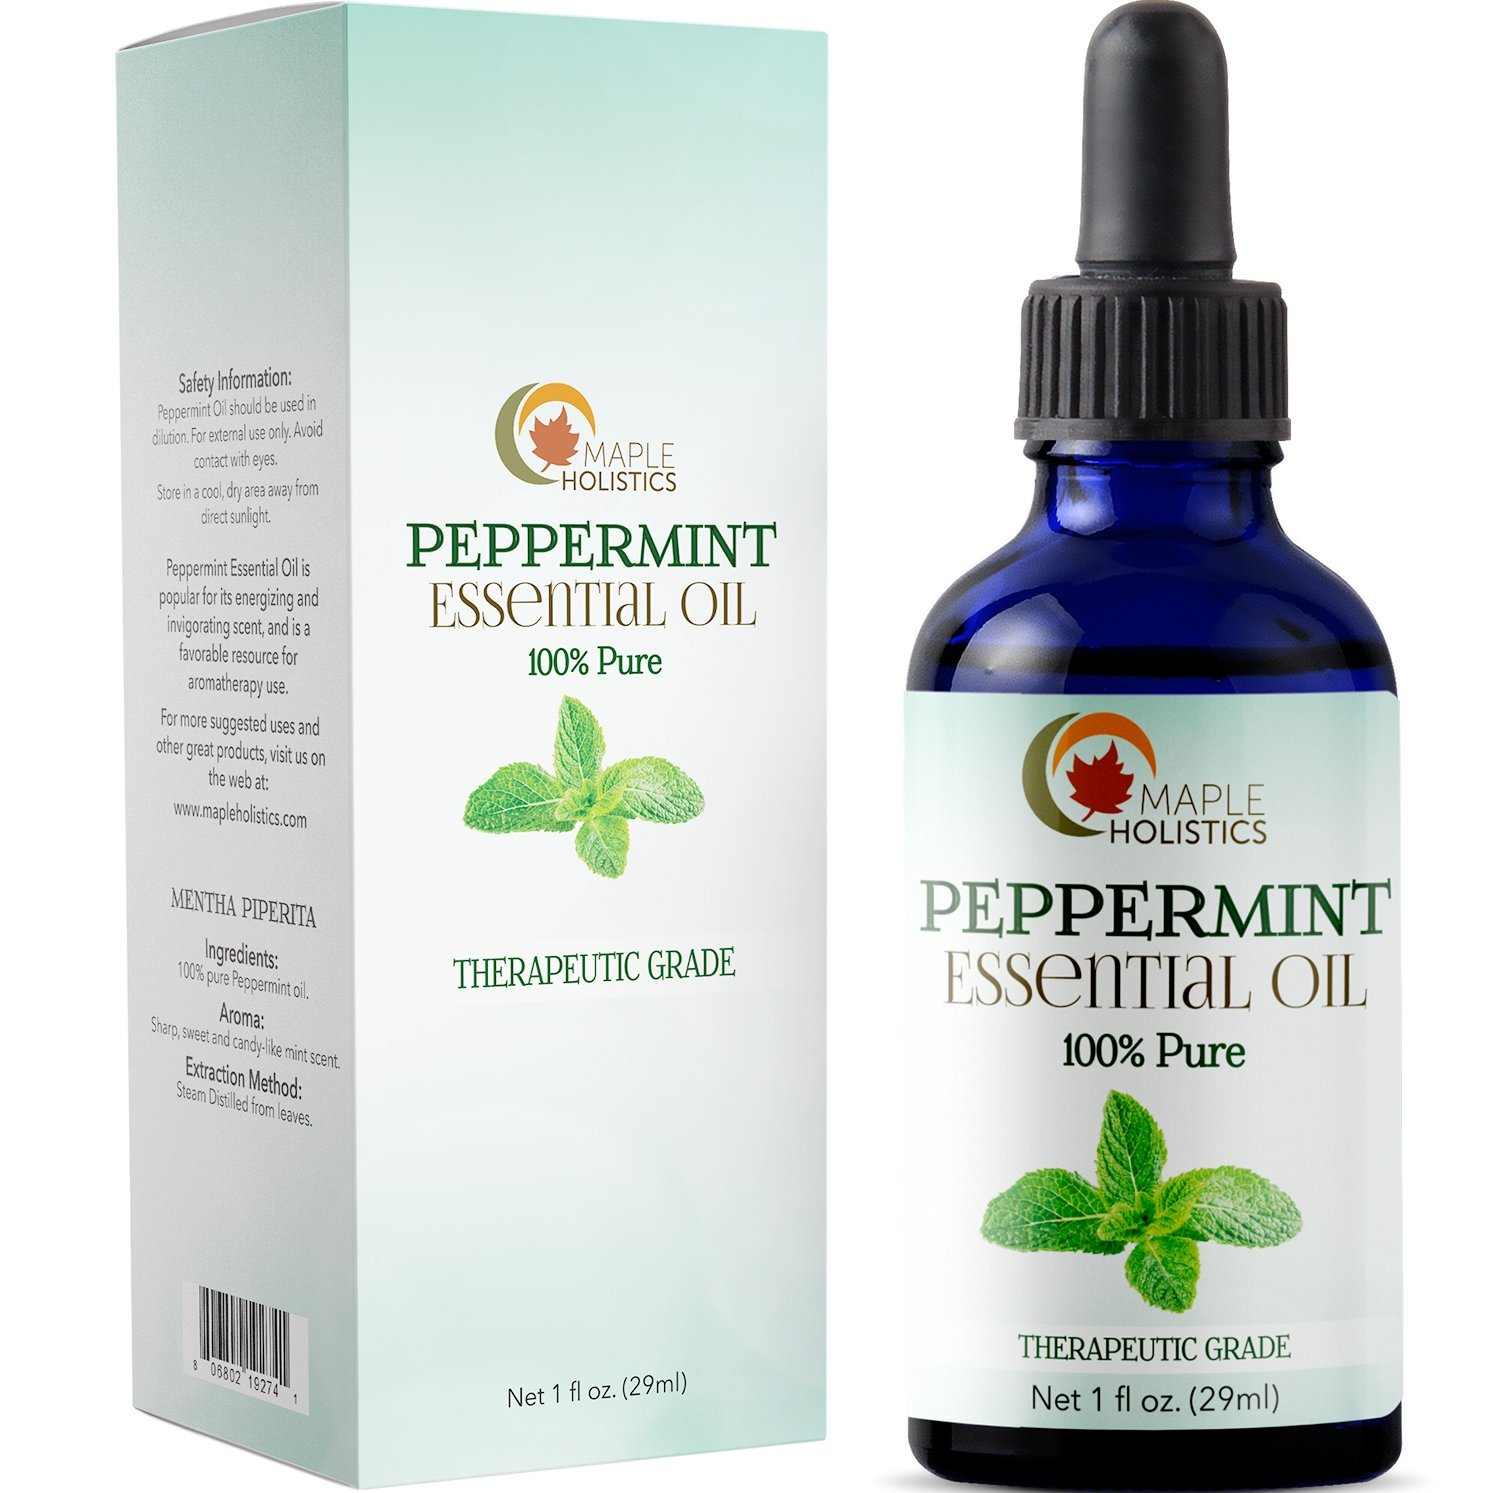 Pure Peppermint Essential Oil for Mice Undiluted Natural Mint Blend Air Freshener Radiant Skin Care Antioxidant Elixir to Clear Acne and Boost Hair Growth Aids in Aromatherapy Massage for Muscle Pain